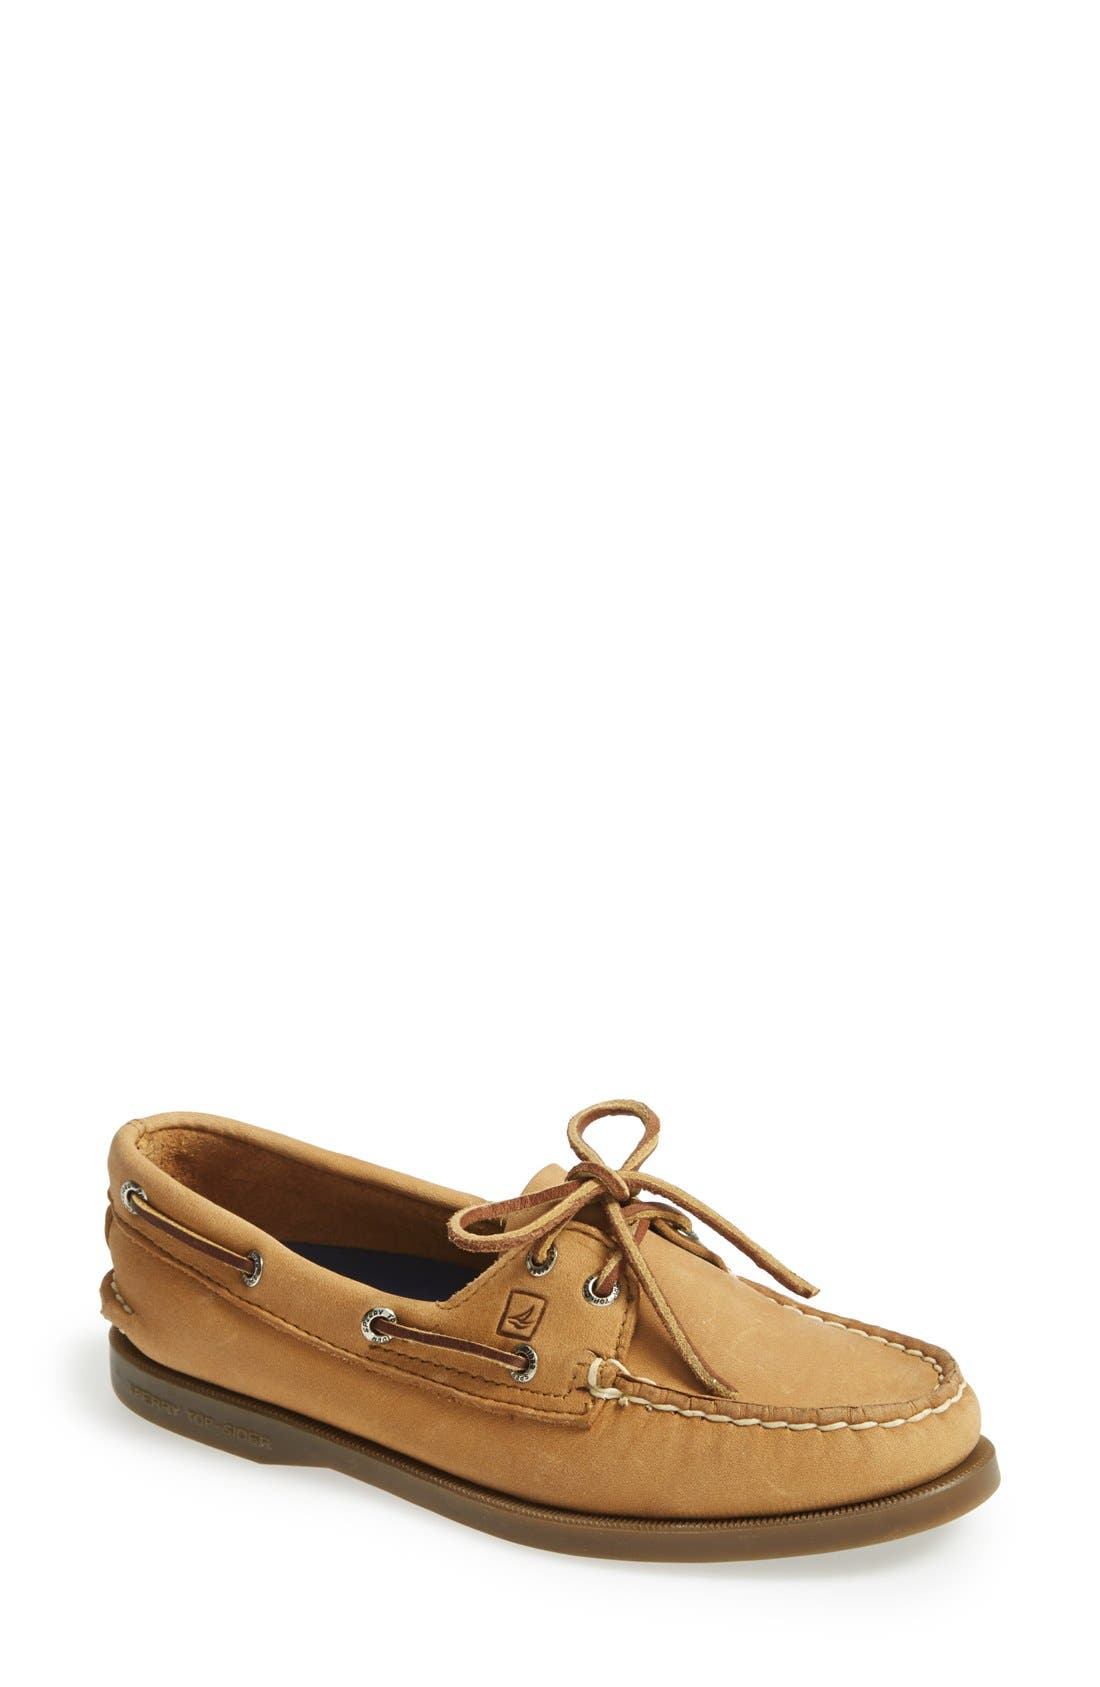 Main Image - Sperry 'Authentic Original' Woven Boat Shoe